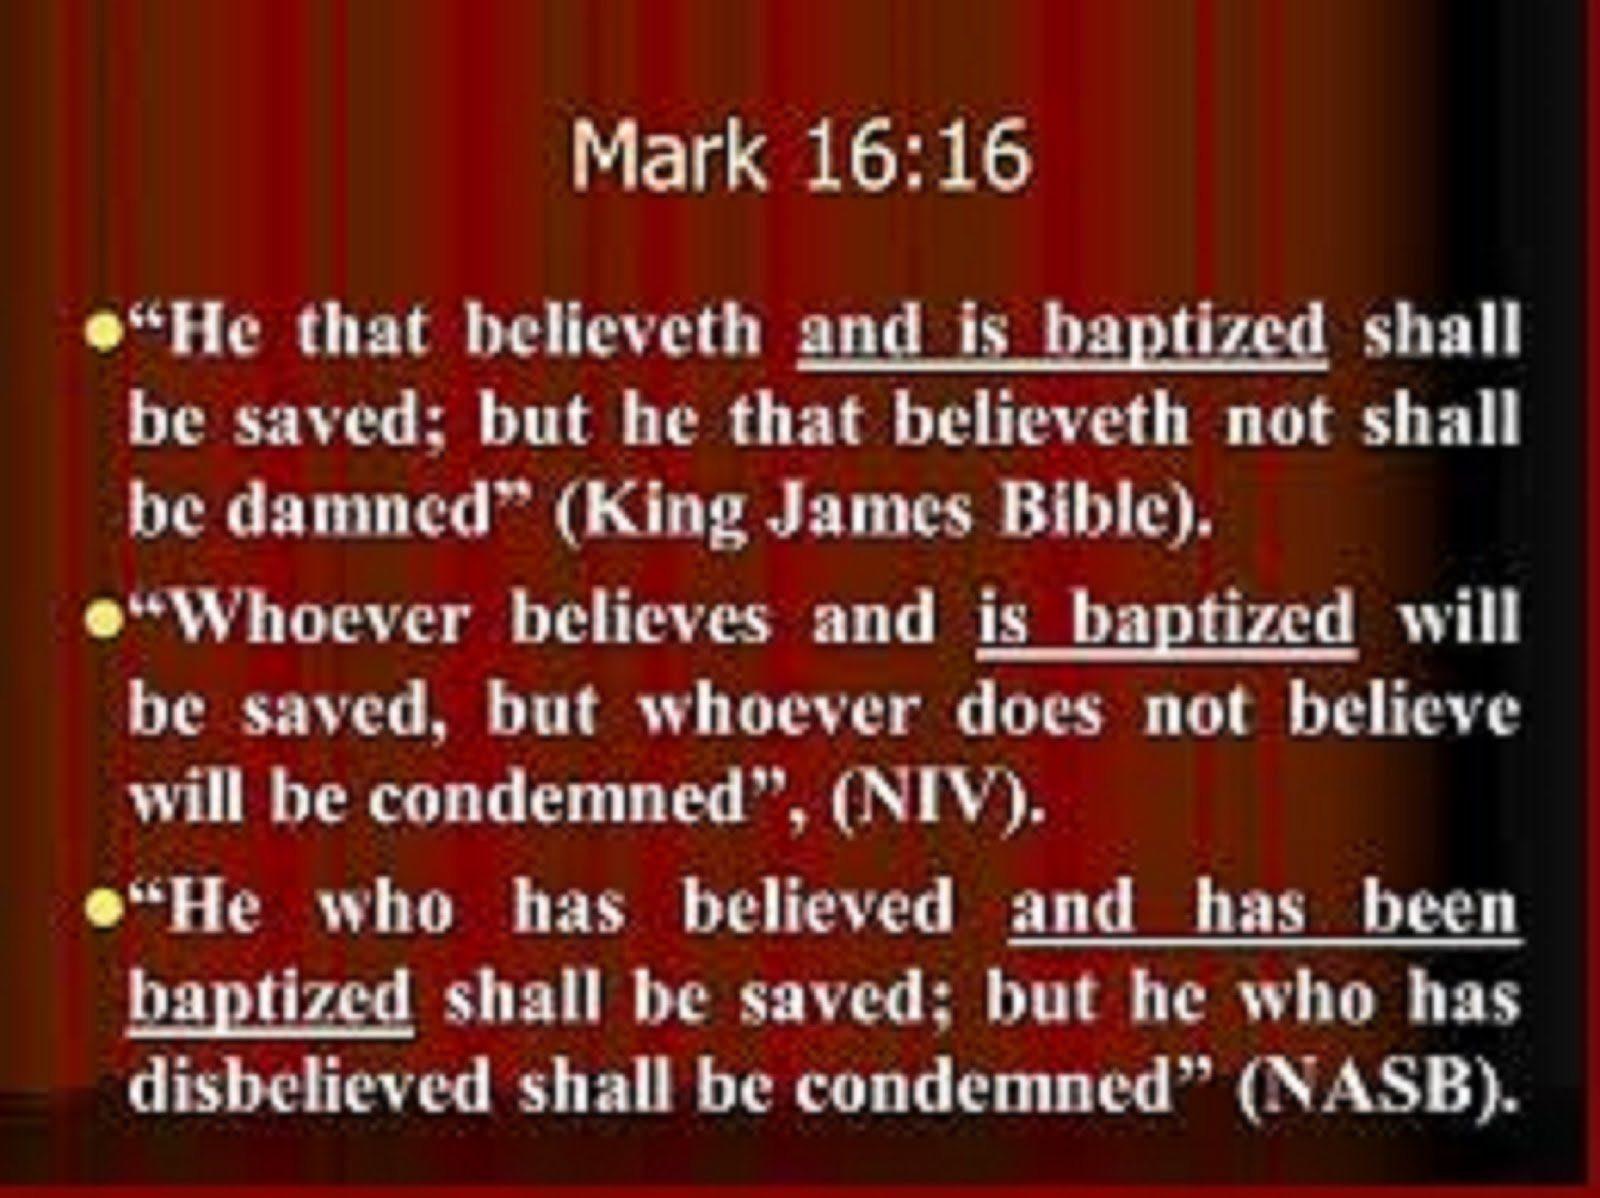 MARK 1616 - HE THAT BELIEVETH AND IS BAPTISED SHALL BE SAVED, BUT HE THAT BELIEVETH NOT SHALL BE DA